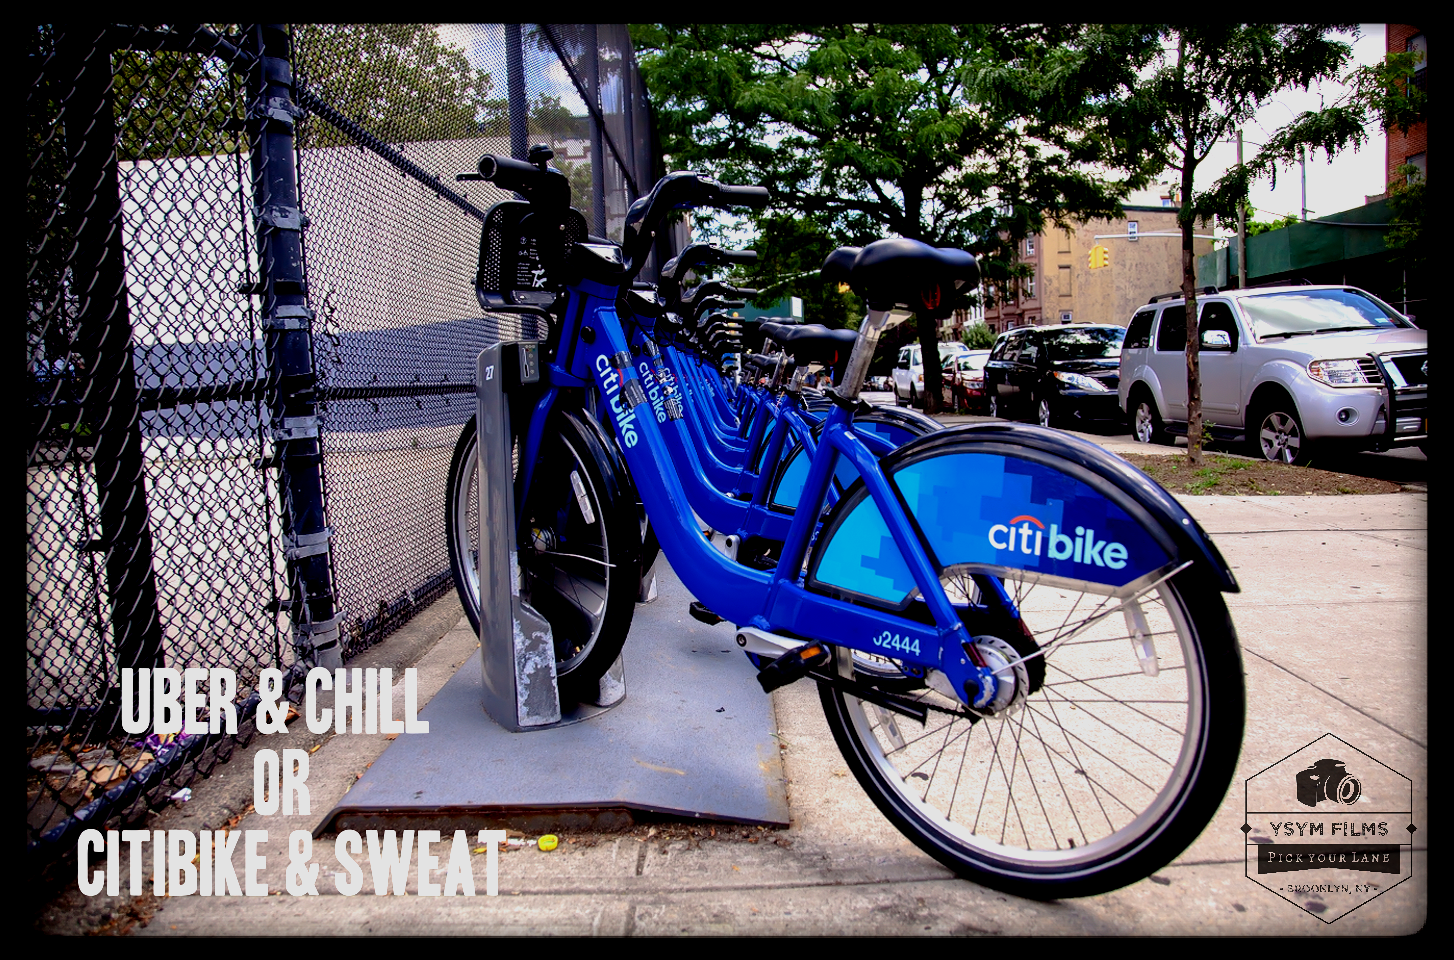 uber & chill citibike ad.png